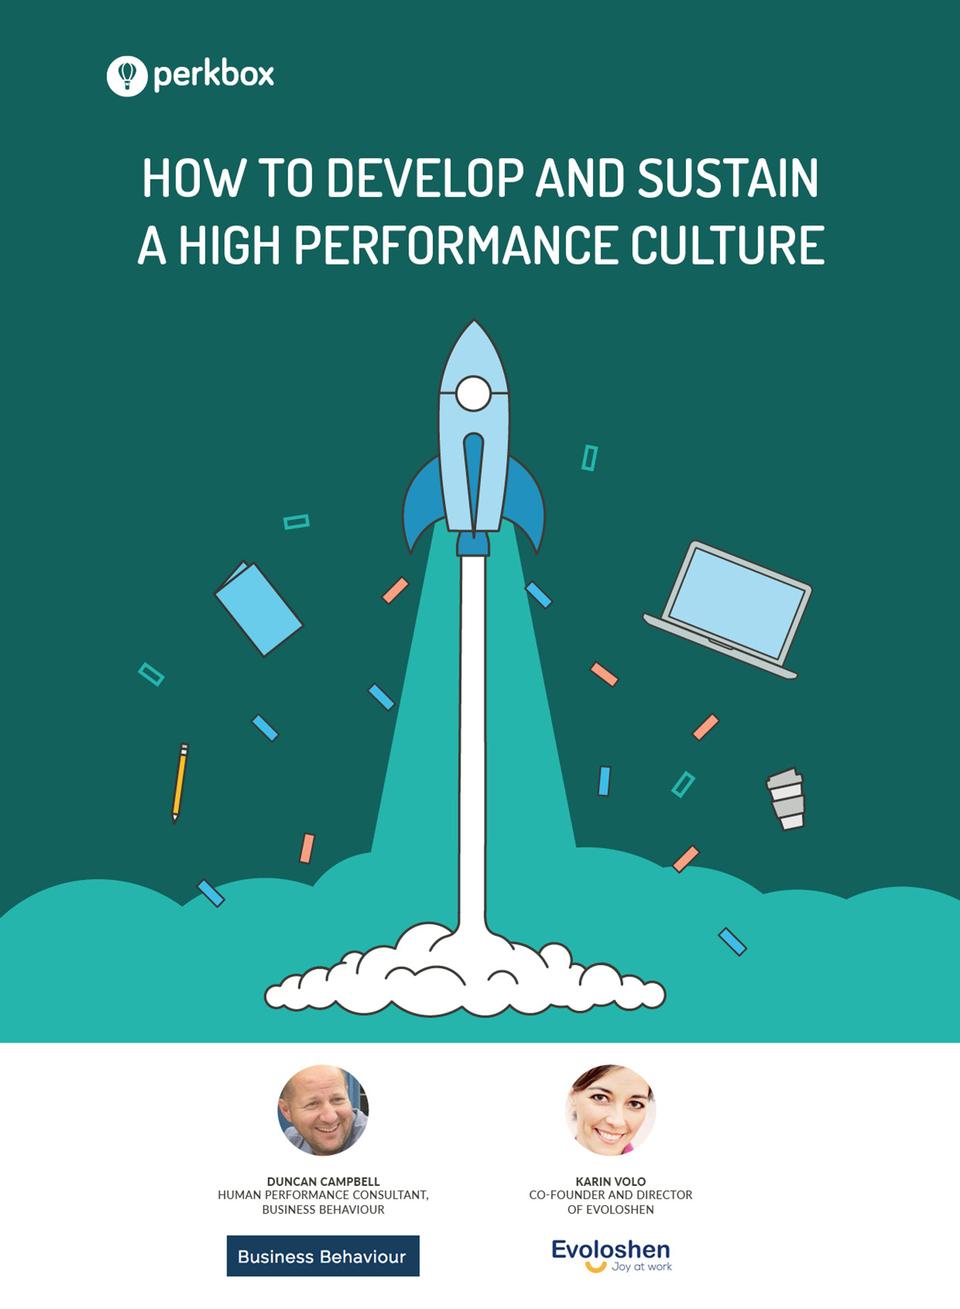 How To Develop and Sustain a High Performance Culture